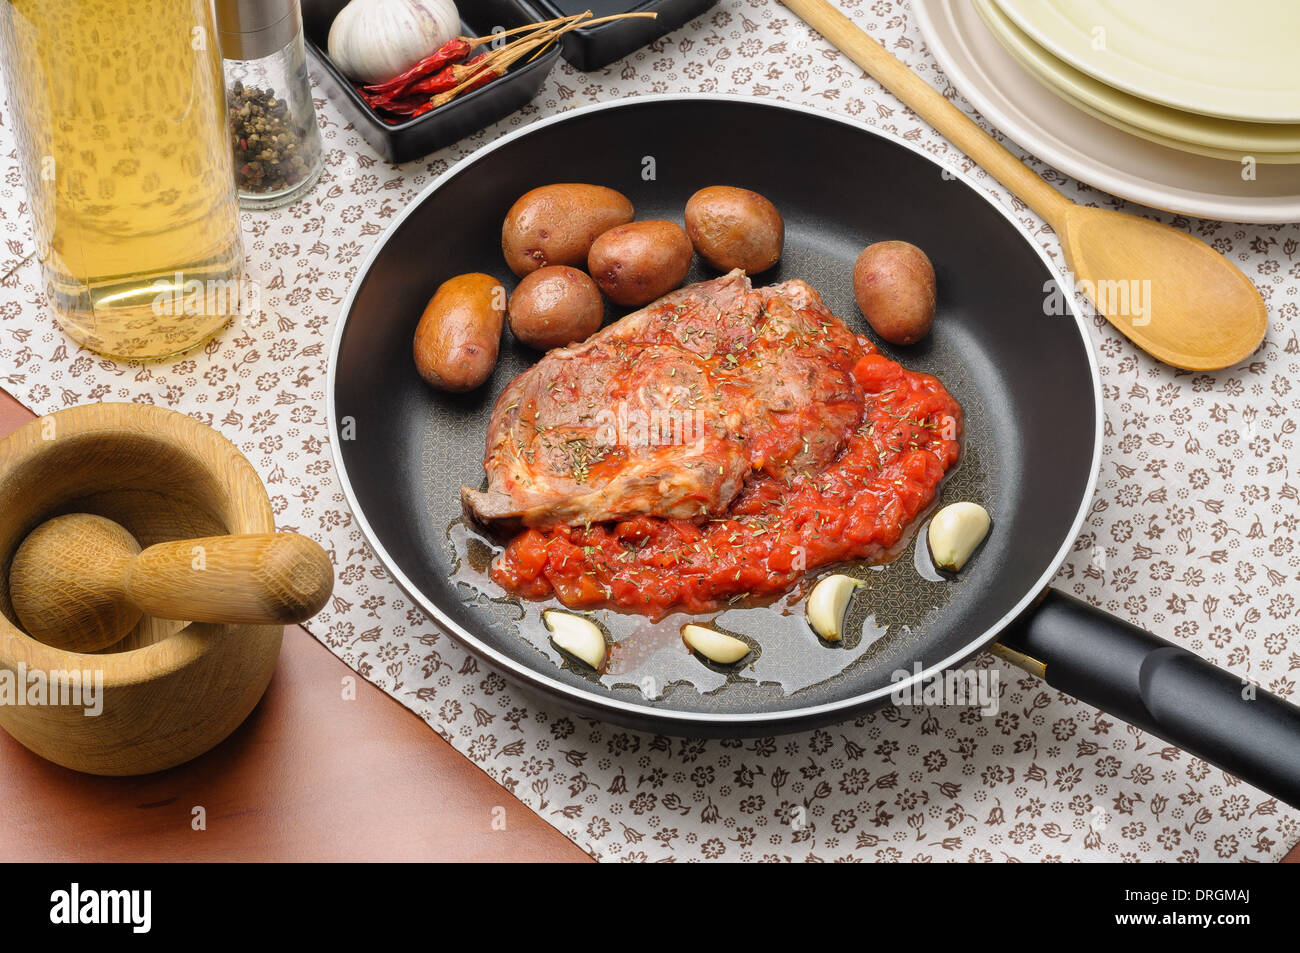 Preparation of ossobuco with tomato, garlic and provencal aromatic herbs, with small new potatoes - Stock Image